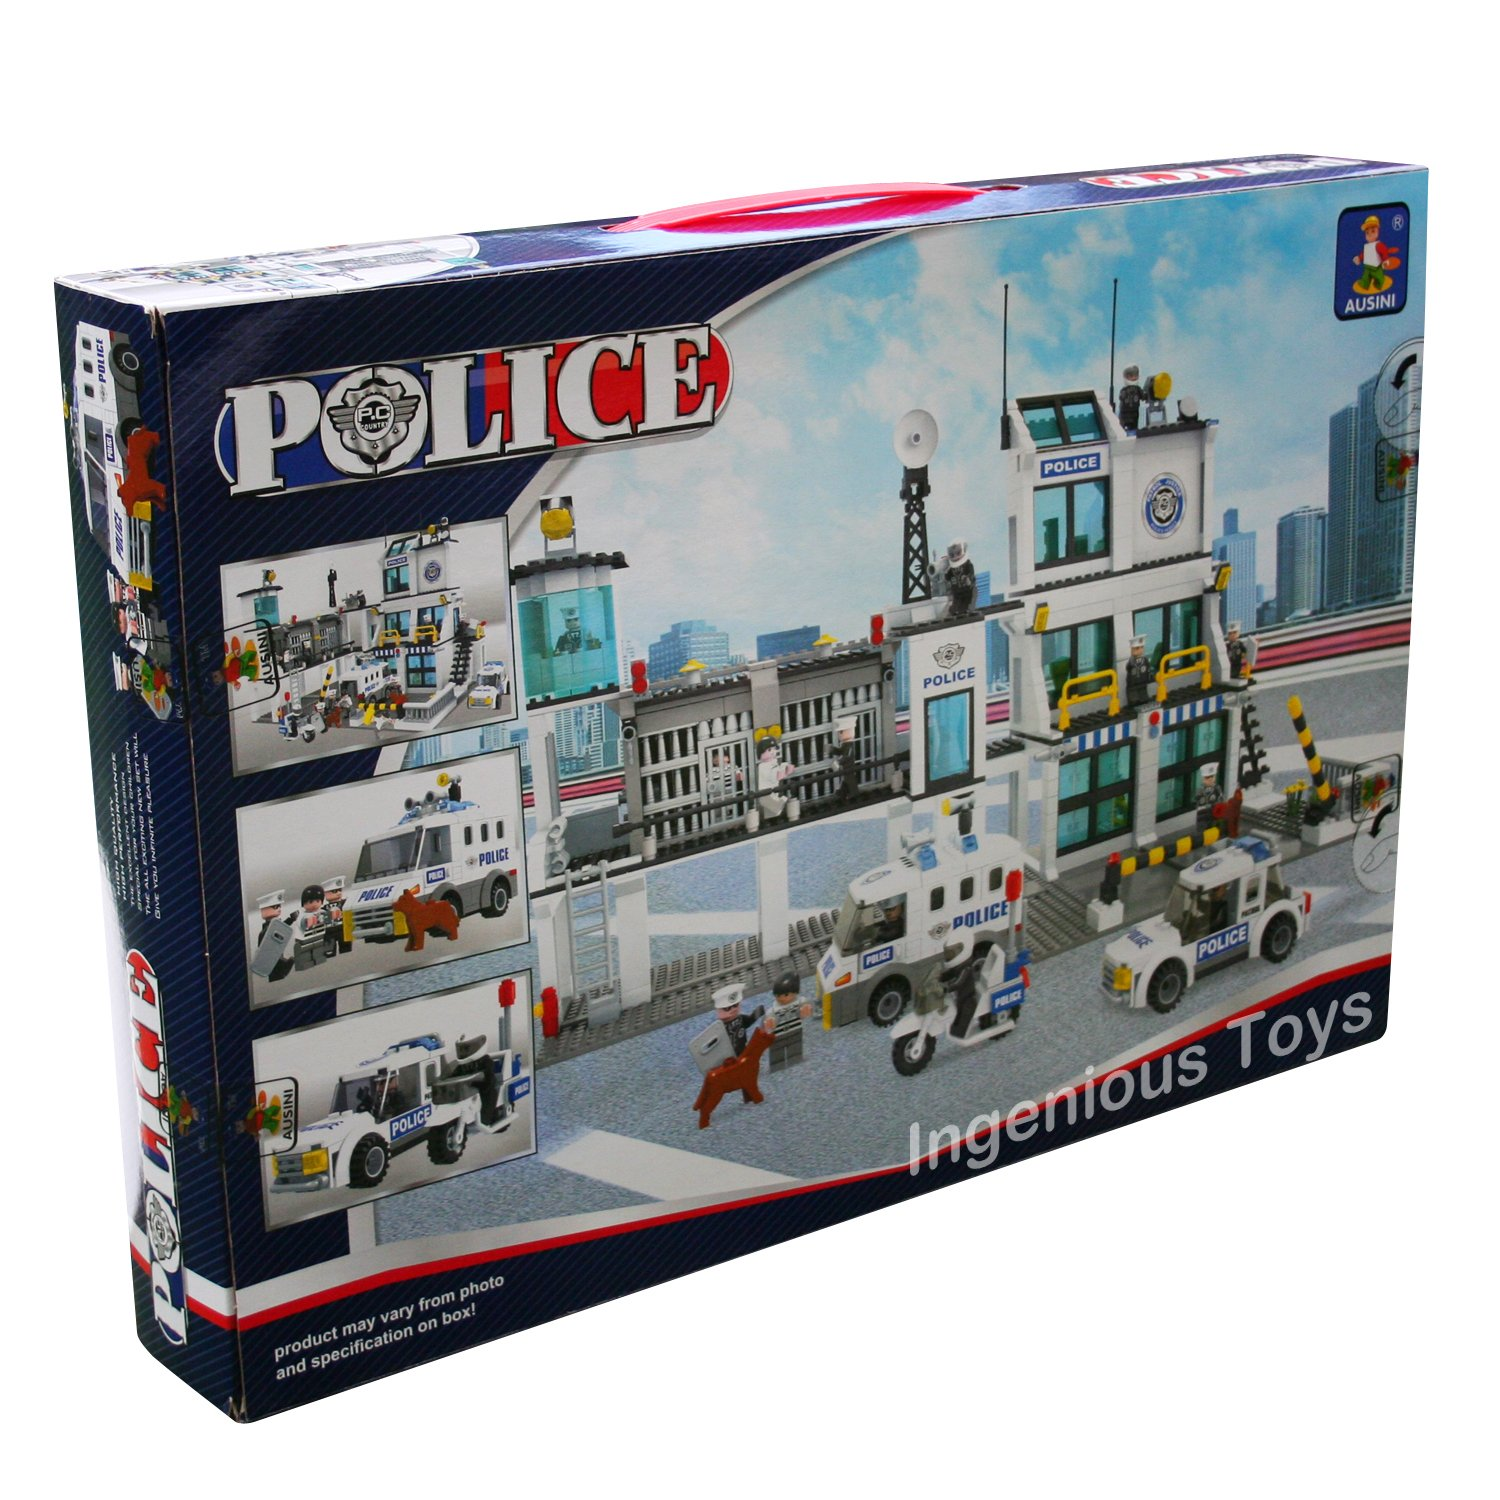 Extra large Police Station Vehicles Prison Cells fig City 1227pcs NEW  #23110: Amazon.co.uk: Toys & Games